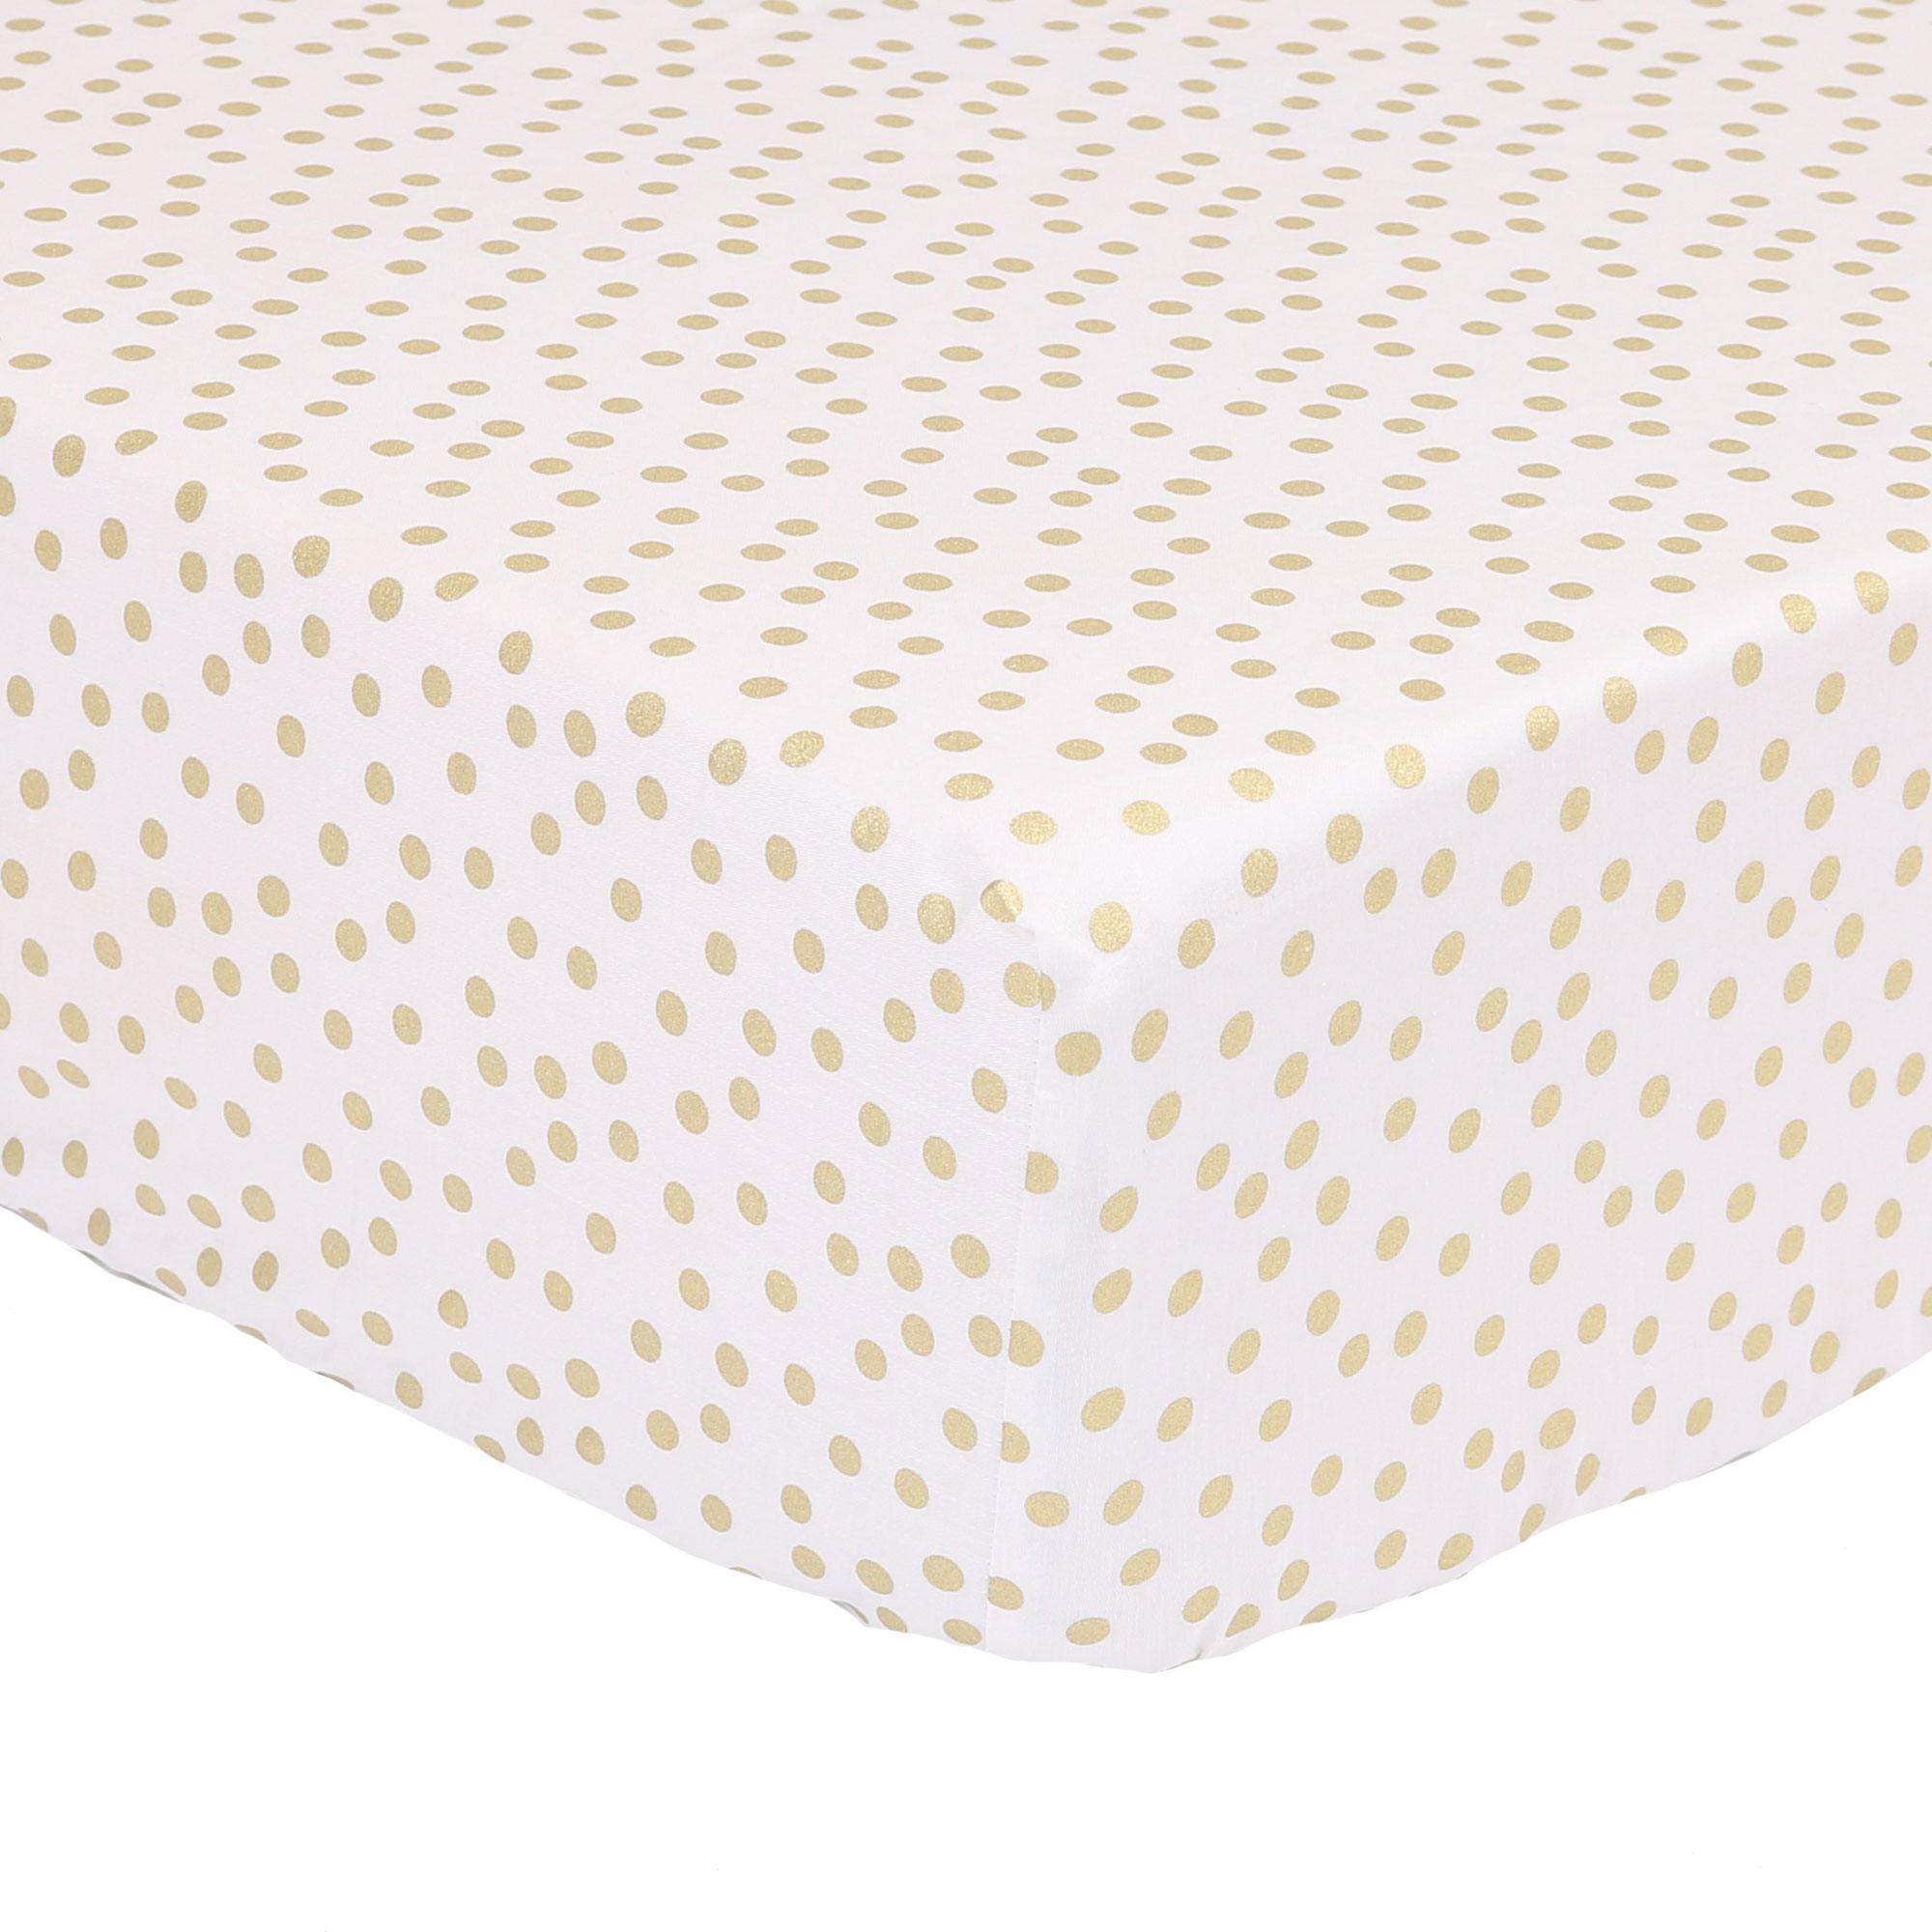 The Peanut Shell Baby Crib Fitted Sheet - Metallic Gold Confetti Dot Print - 100% Cotton Sateen, Fits Standard 52 by 28 Inch Mattress